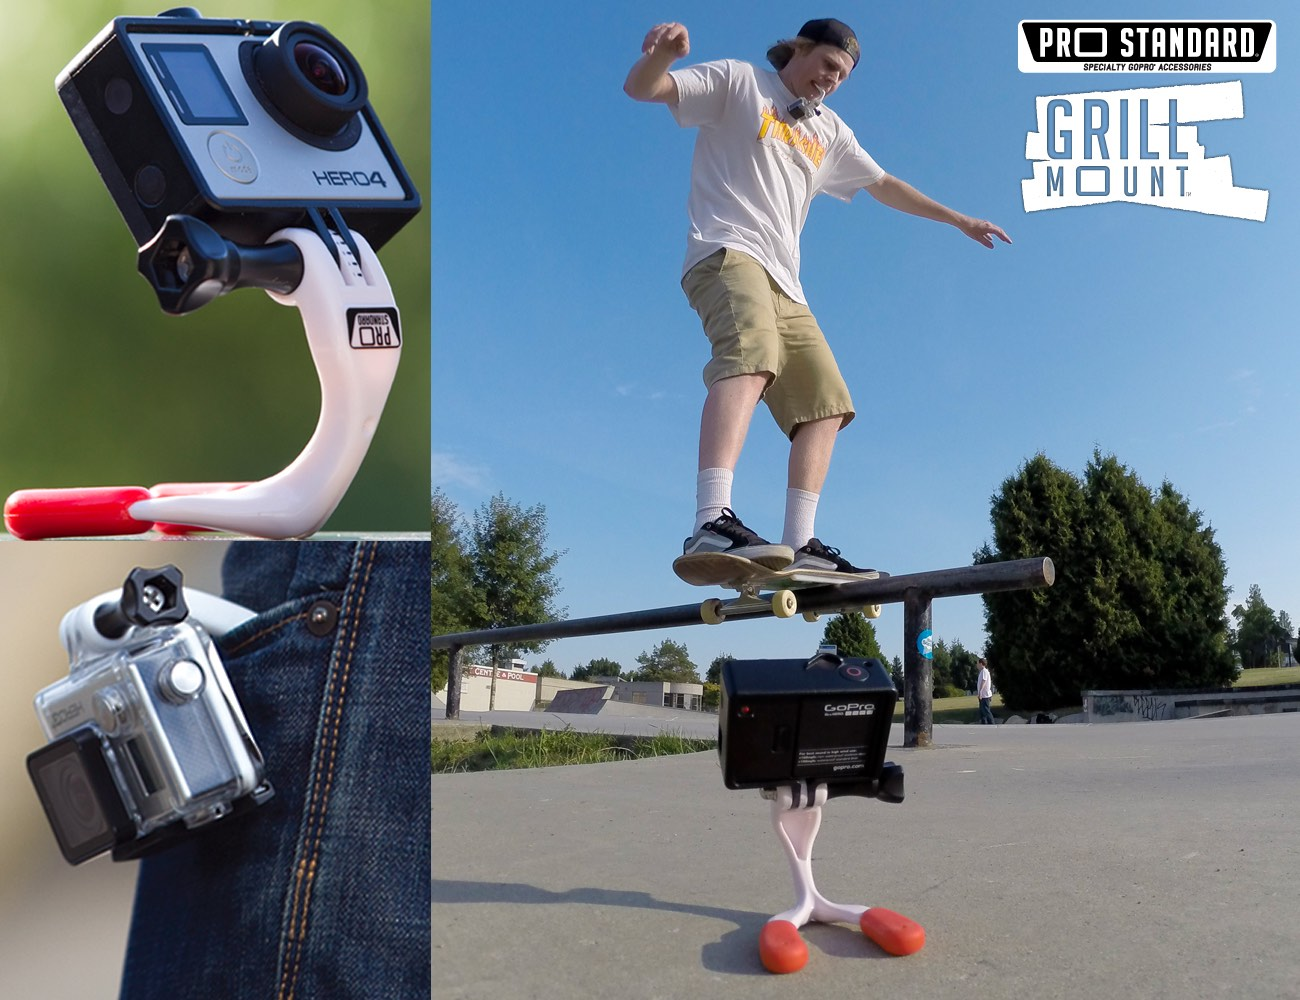 Grill Mount Mini Grip, Tripod, Hook Mount, Mouth Mount for GoPro Cameras